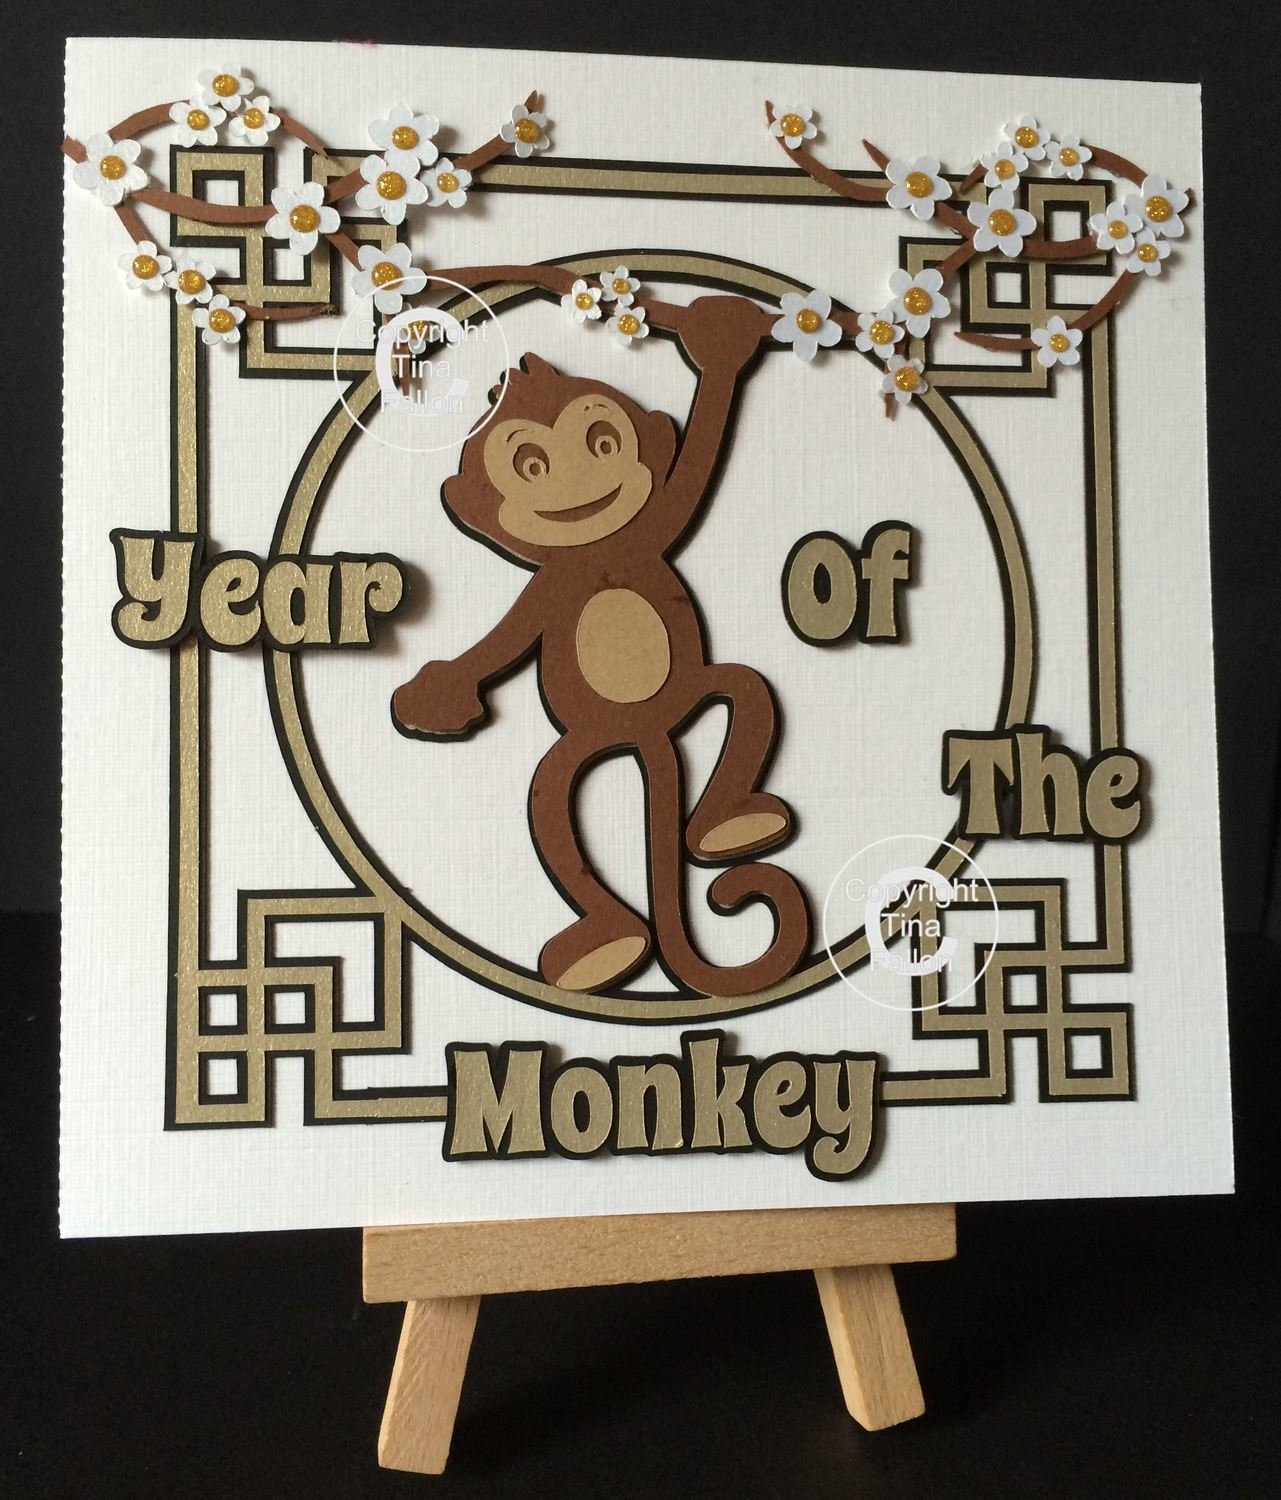 Chinese New Year Card - design 6 Lunar Year of The Monkey